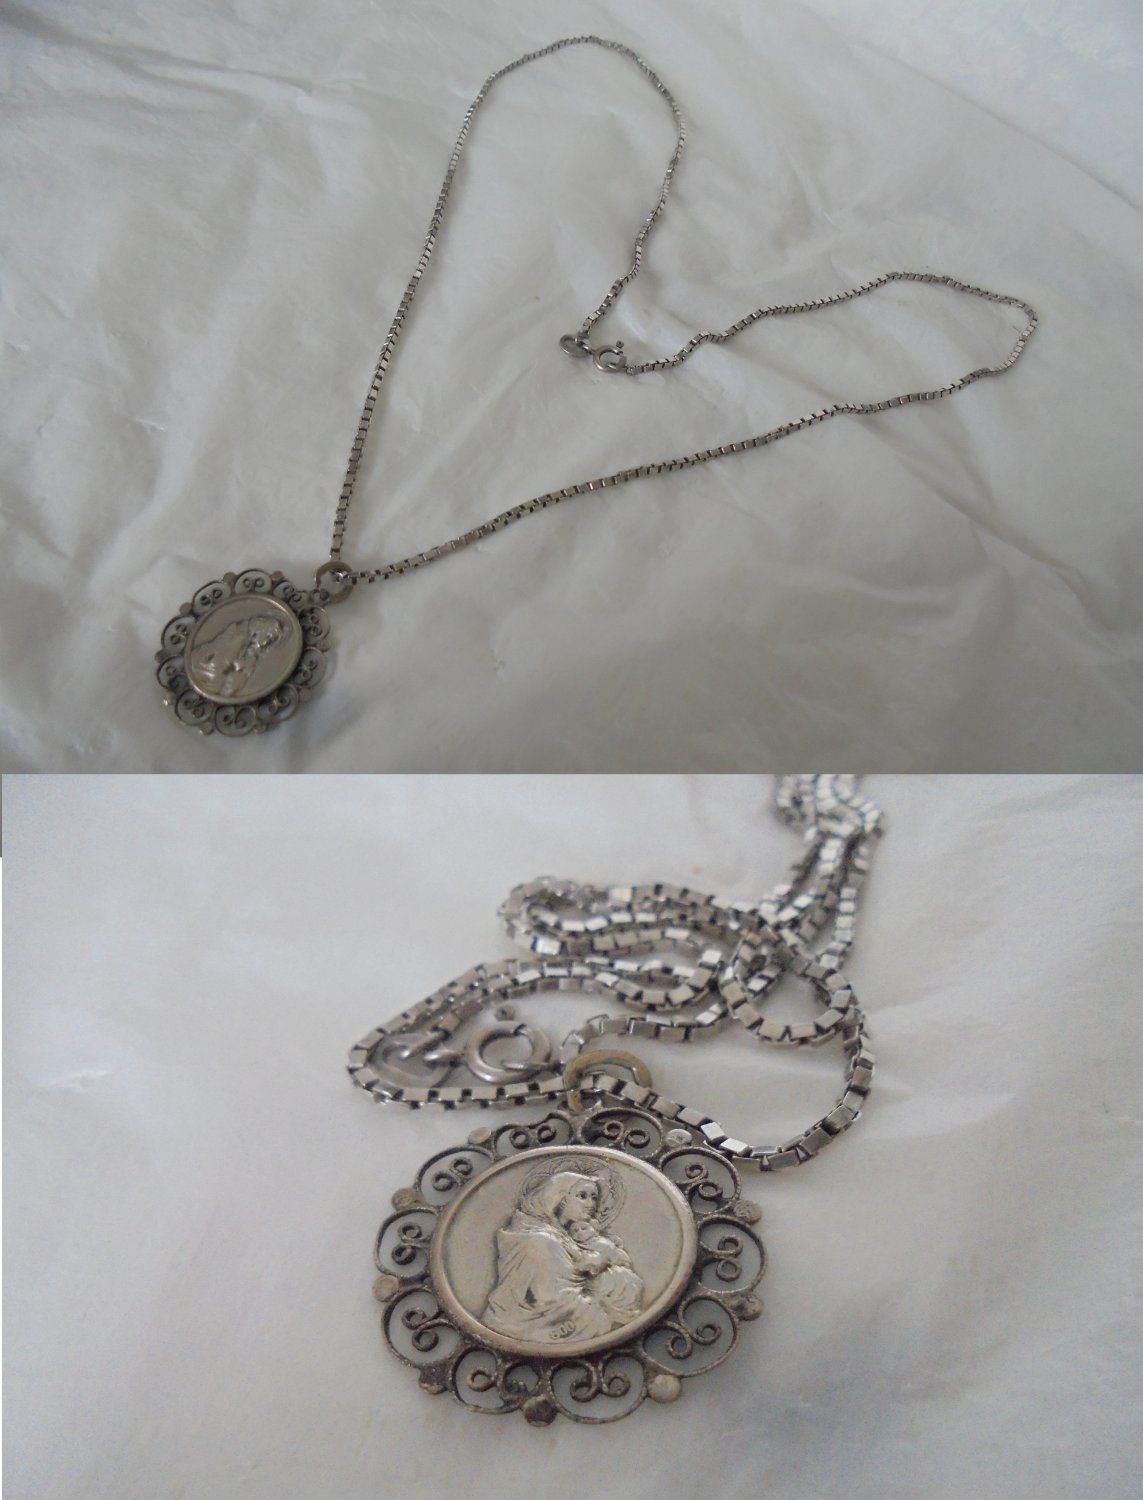 NECKLACE CHAIN in sterling silver 925 Madonna Vergin Mary pendent silver 800 Original 1970s